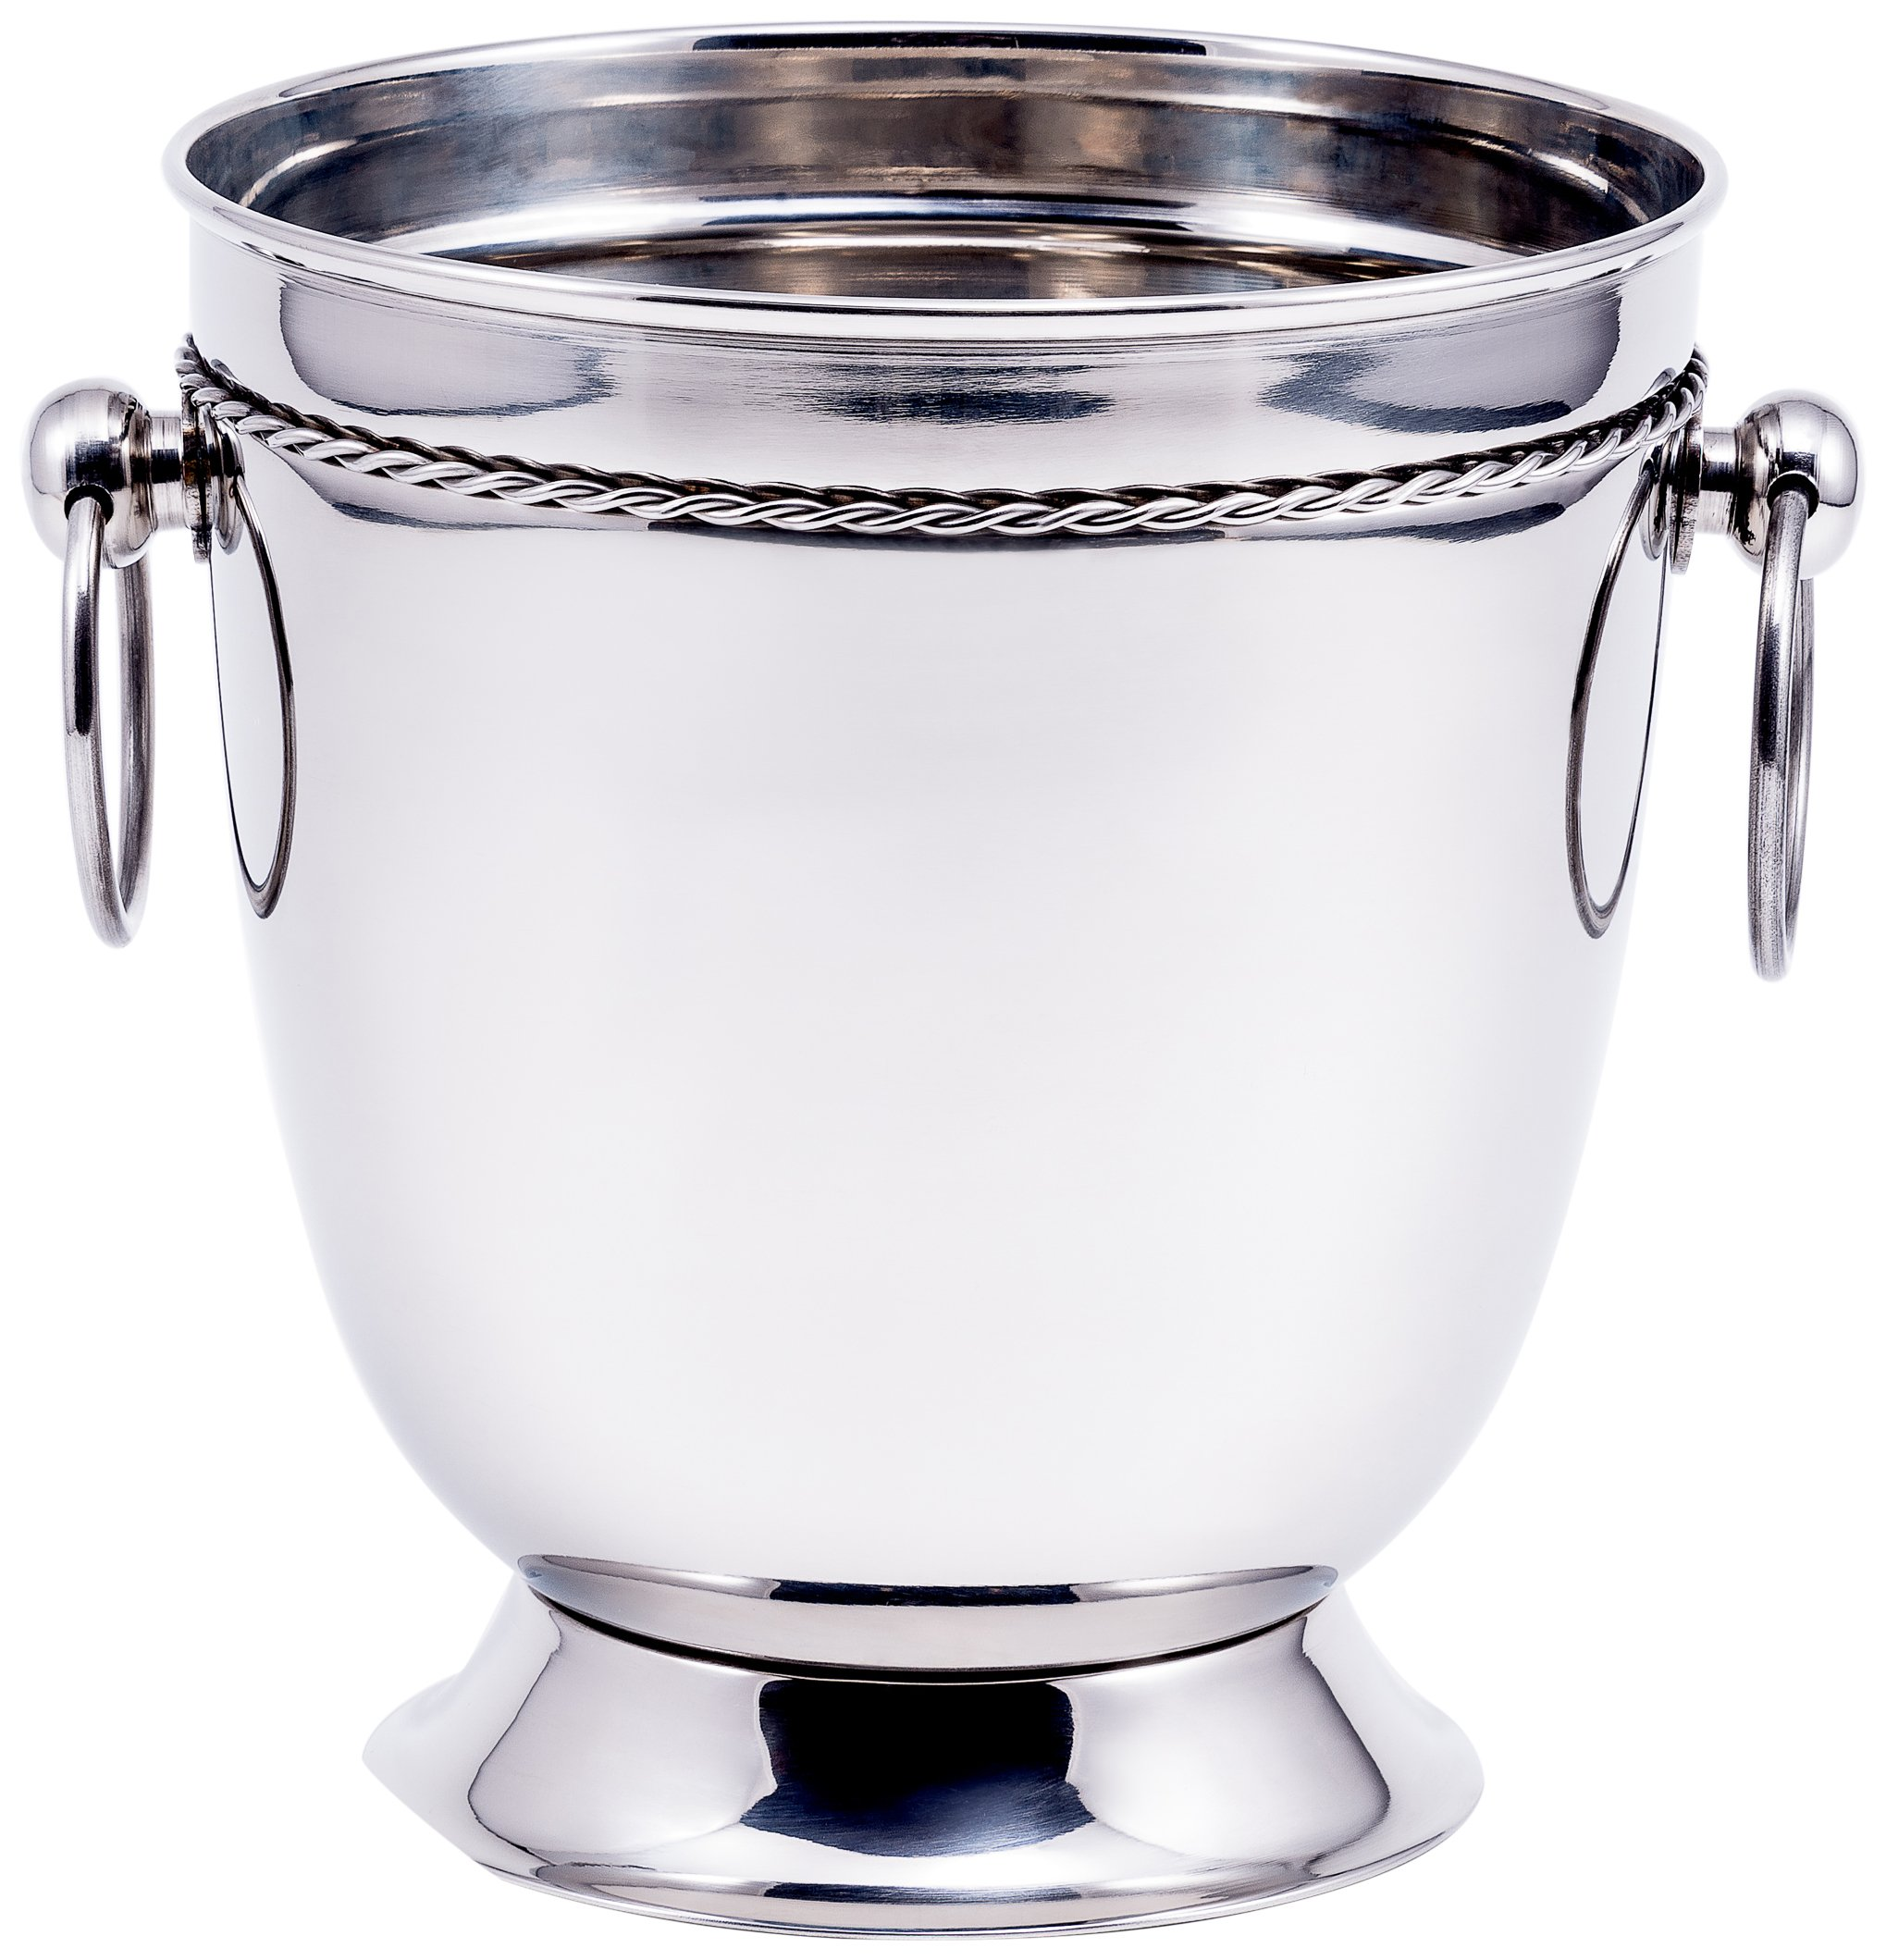 Old Dutch International Champagne Bucket, Stainless Steel by Old Dutch